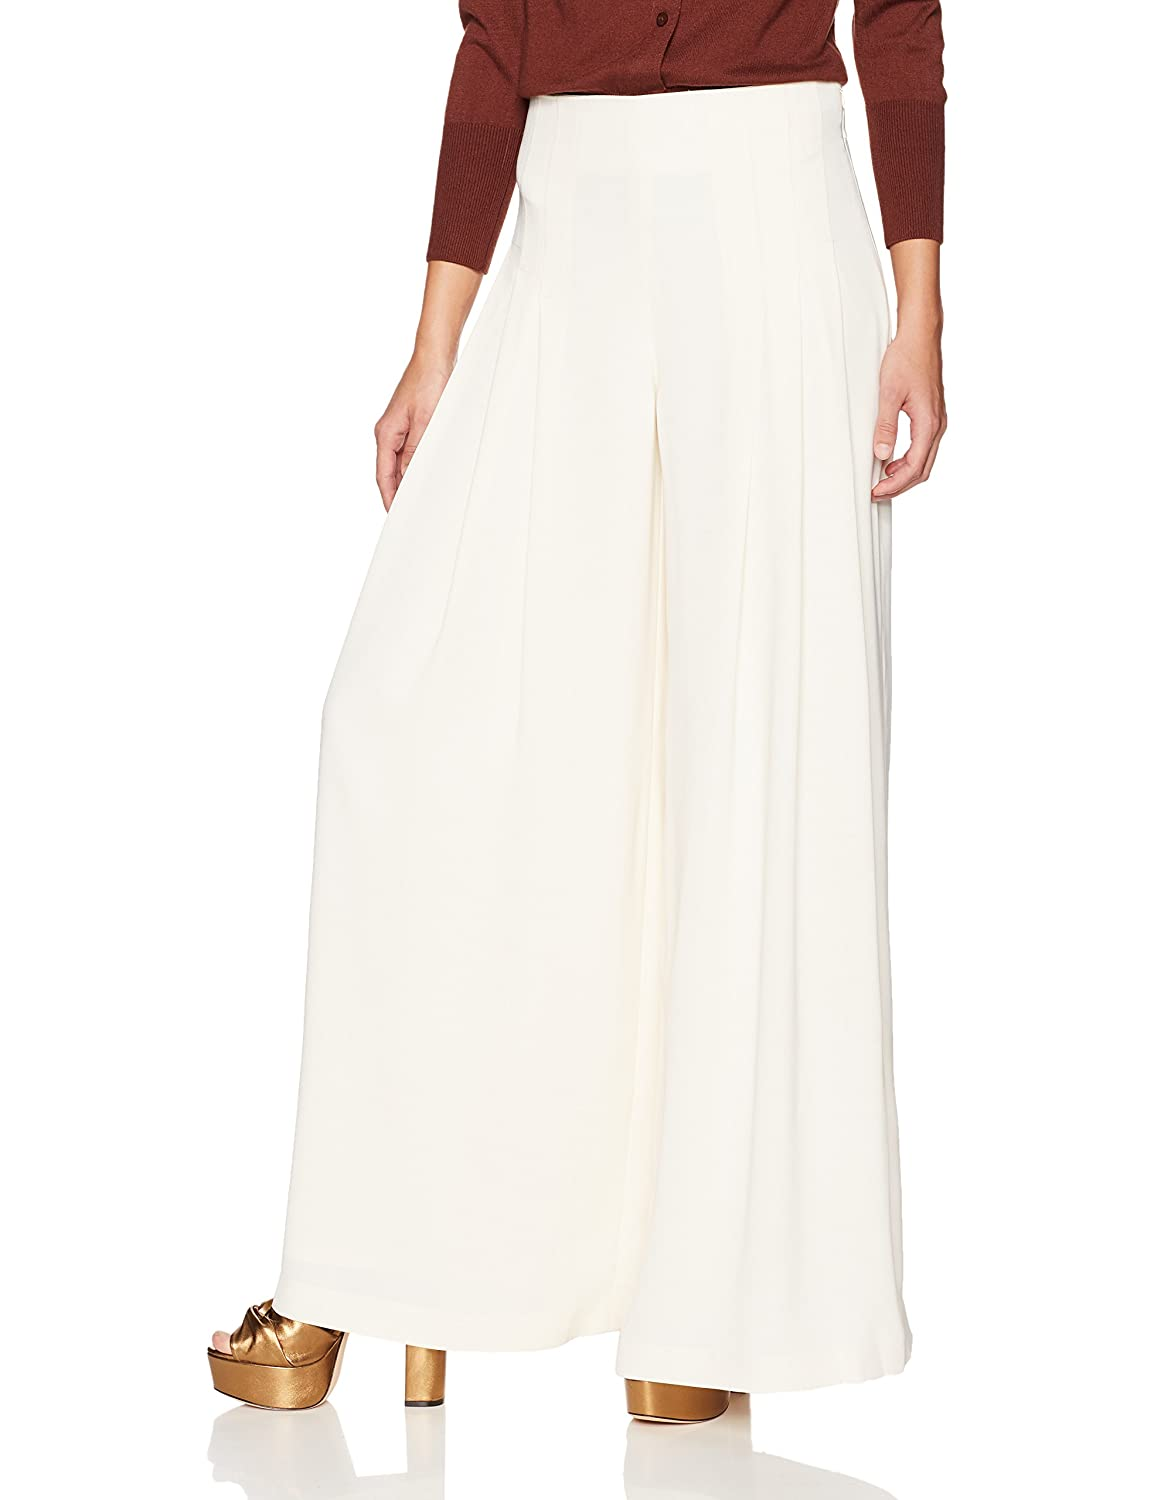 Cream Dear Drew by Drew Barrymore Women's Maiden Lane High Waisted Wide Leg Trouser